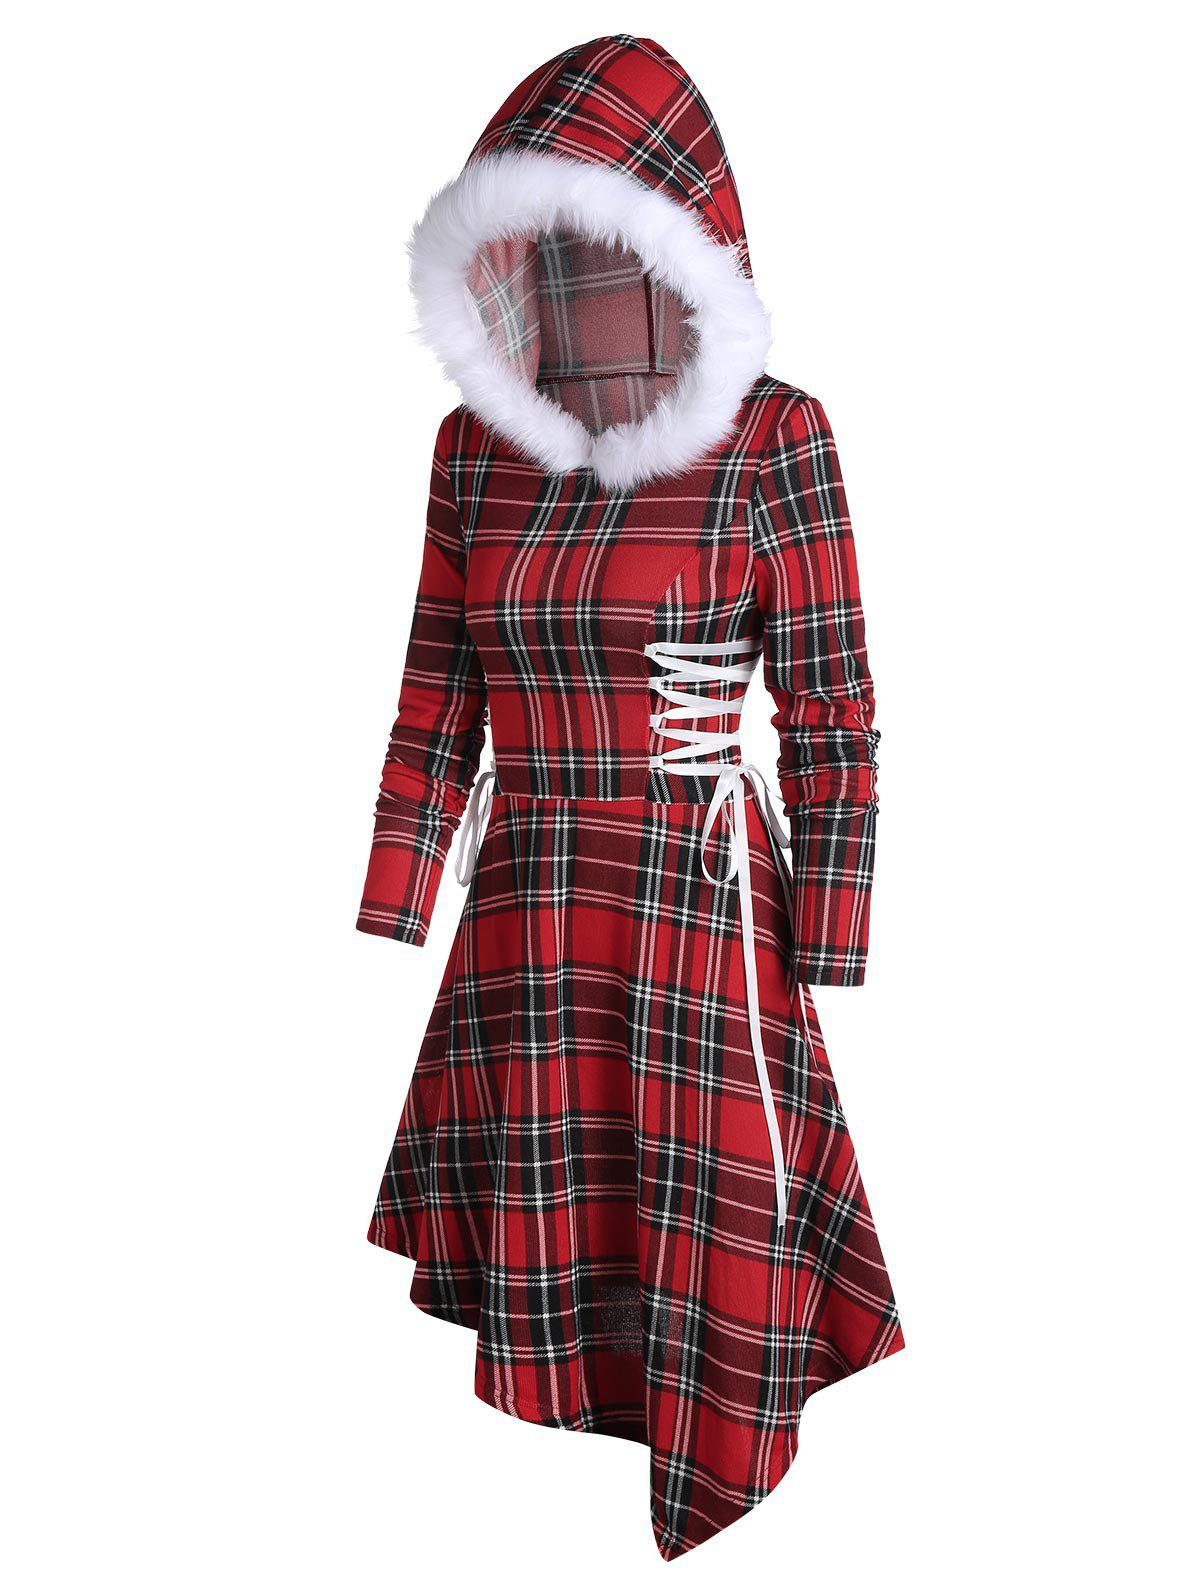 Shop Faux Fur Hooded Plaid Print Lace-up Asymmetric Dress